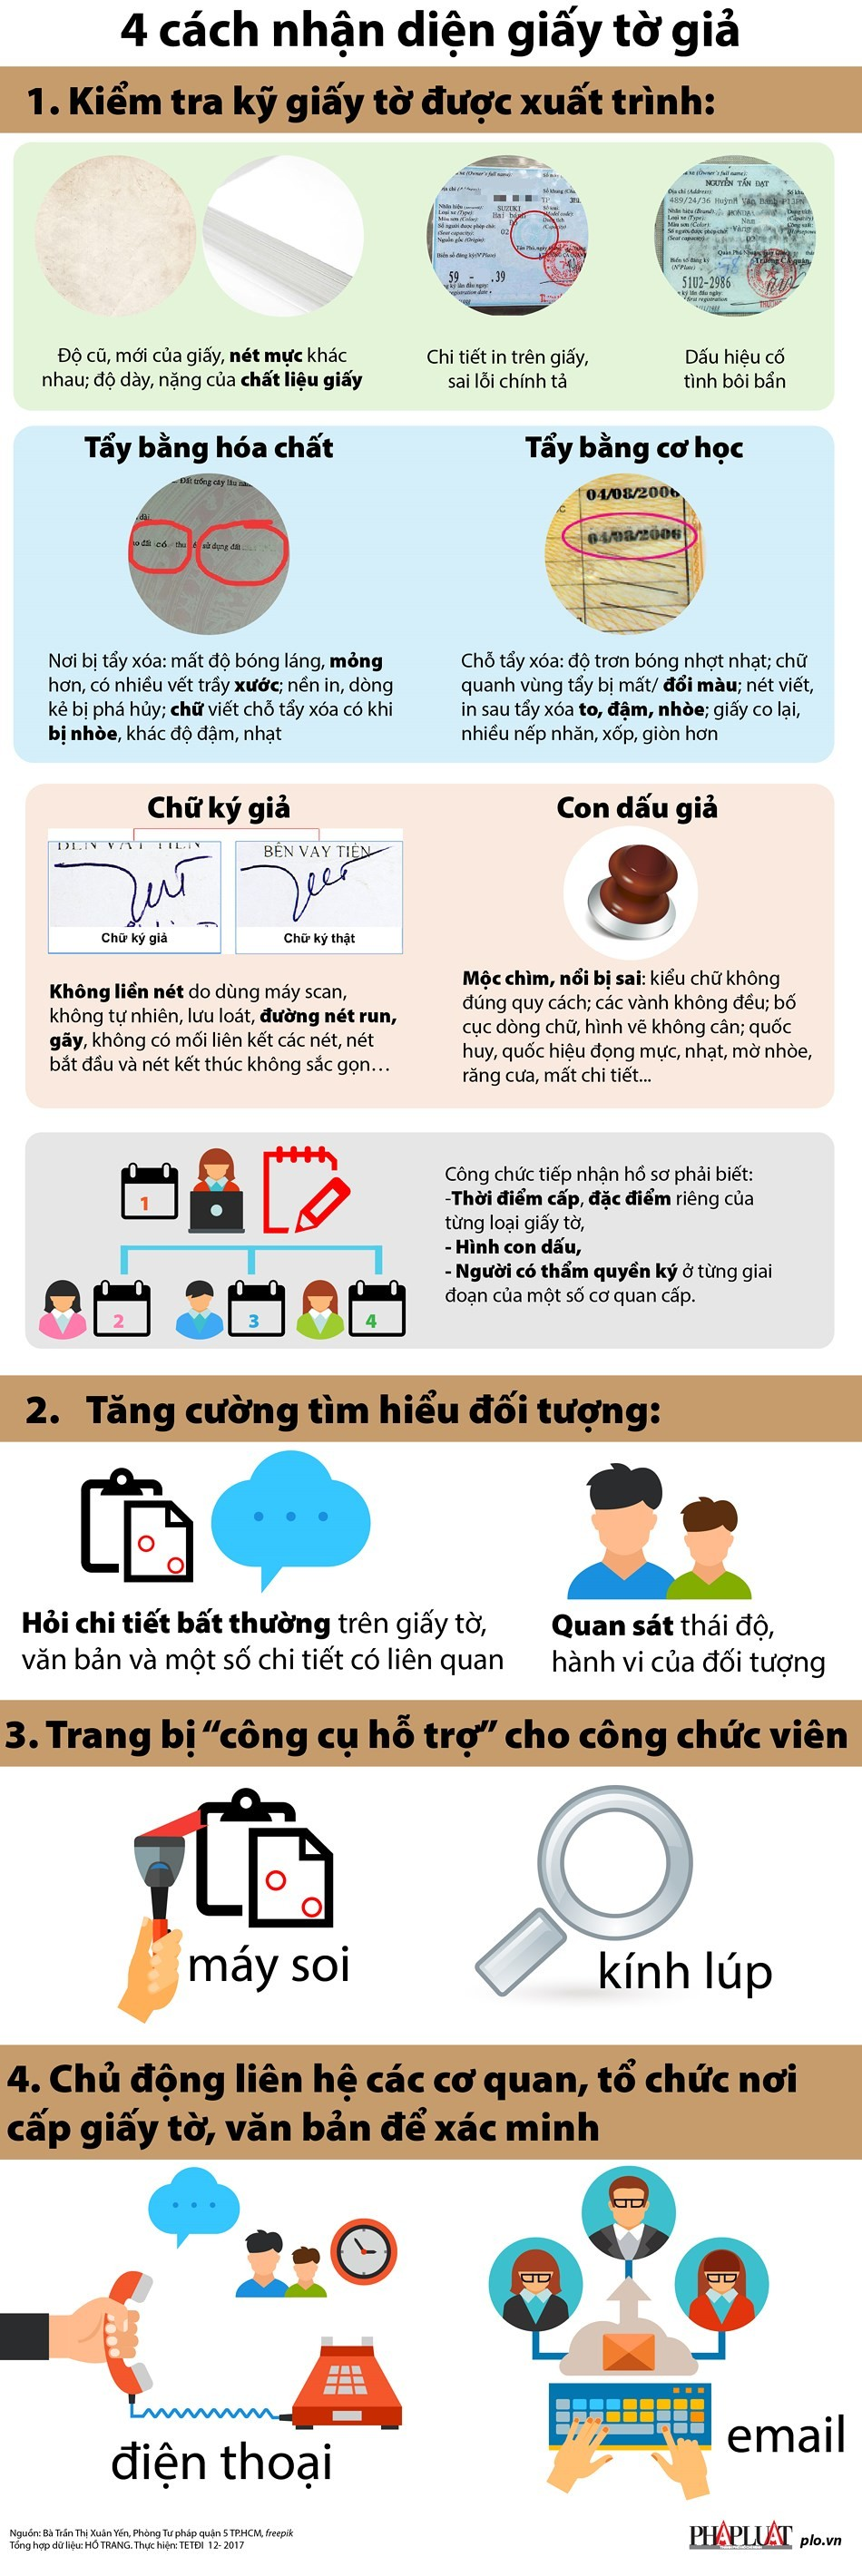 infographic 4 cach nhan dien giay to gia